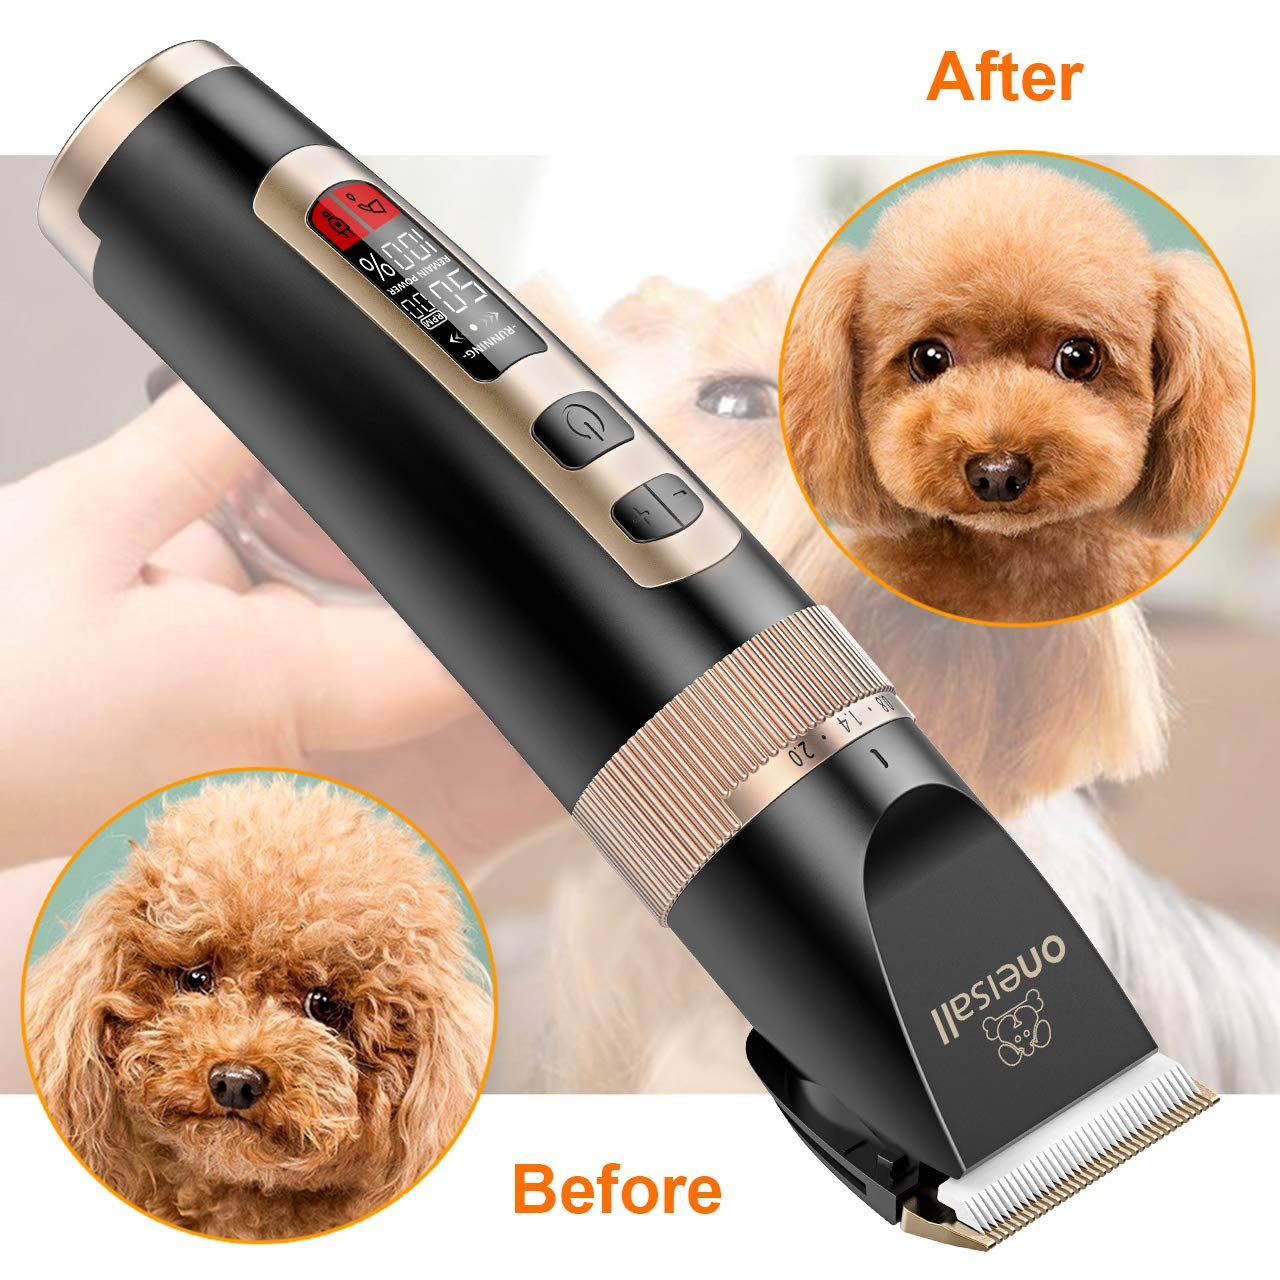 oneisall Dog Clippers Professional, 3-Speed Quiet Rechargeable Cordless Pet Grooming Hair Clippers Set for Small and Large Dogs Cats-Black by oneisall (Image #6)